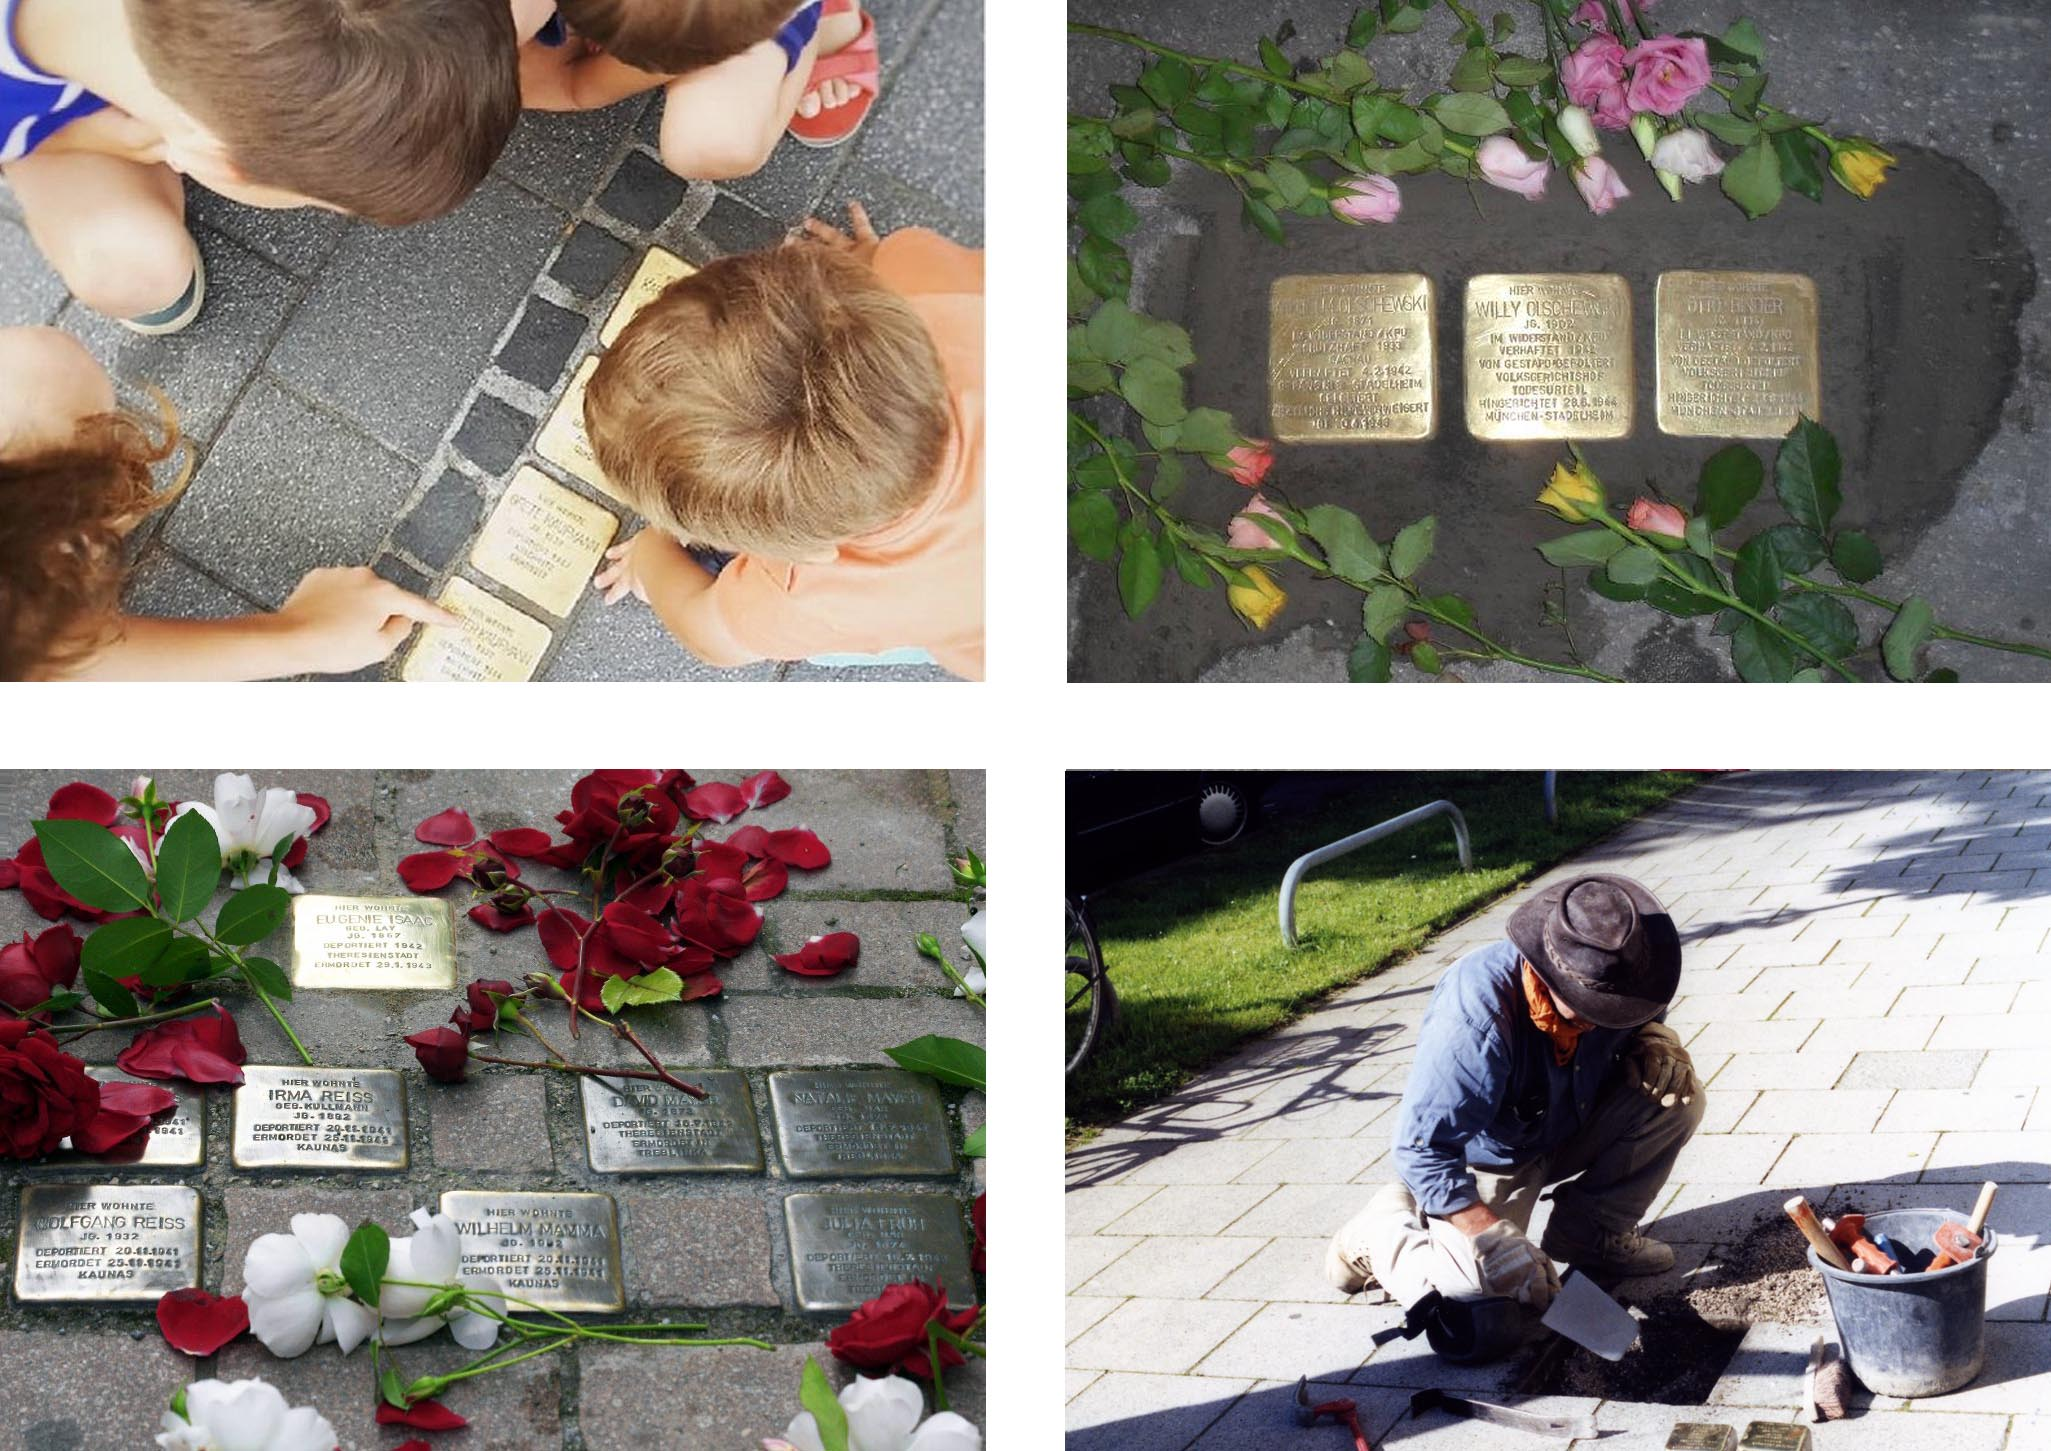 Four images showing the Stolpersteine in Munich